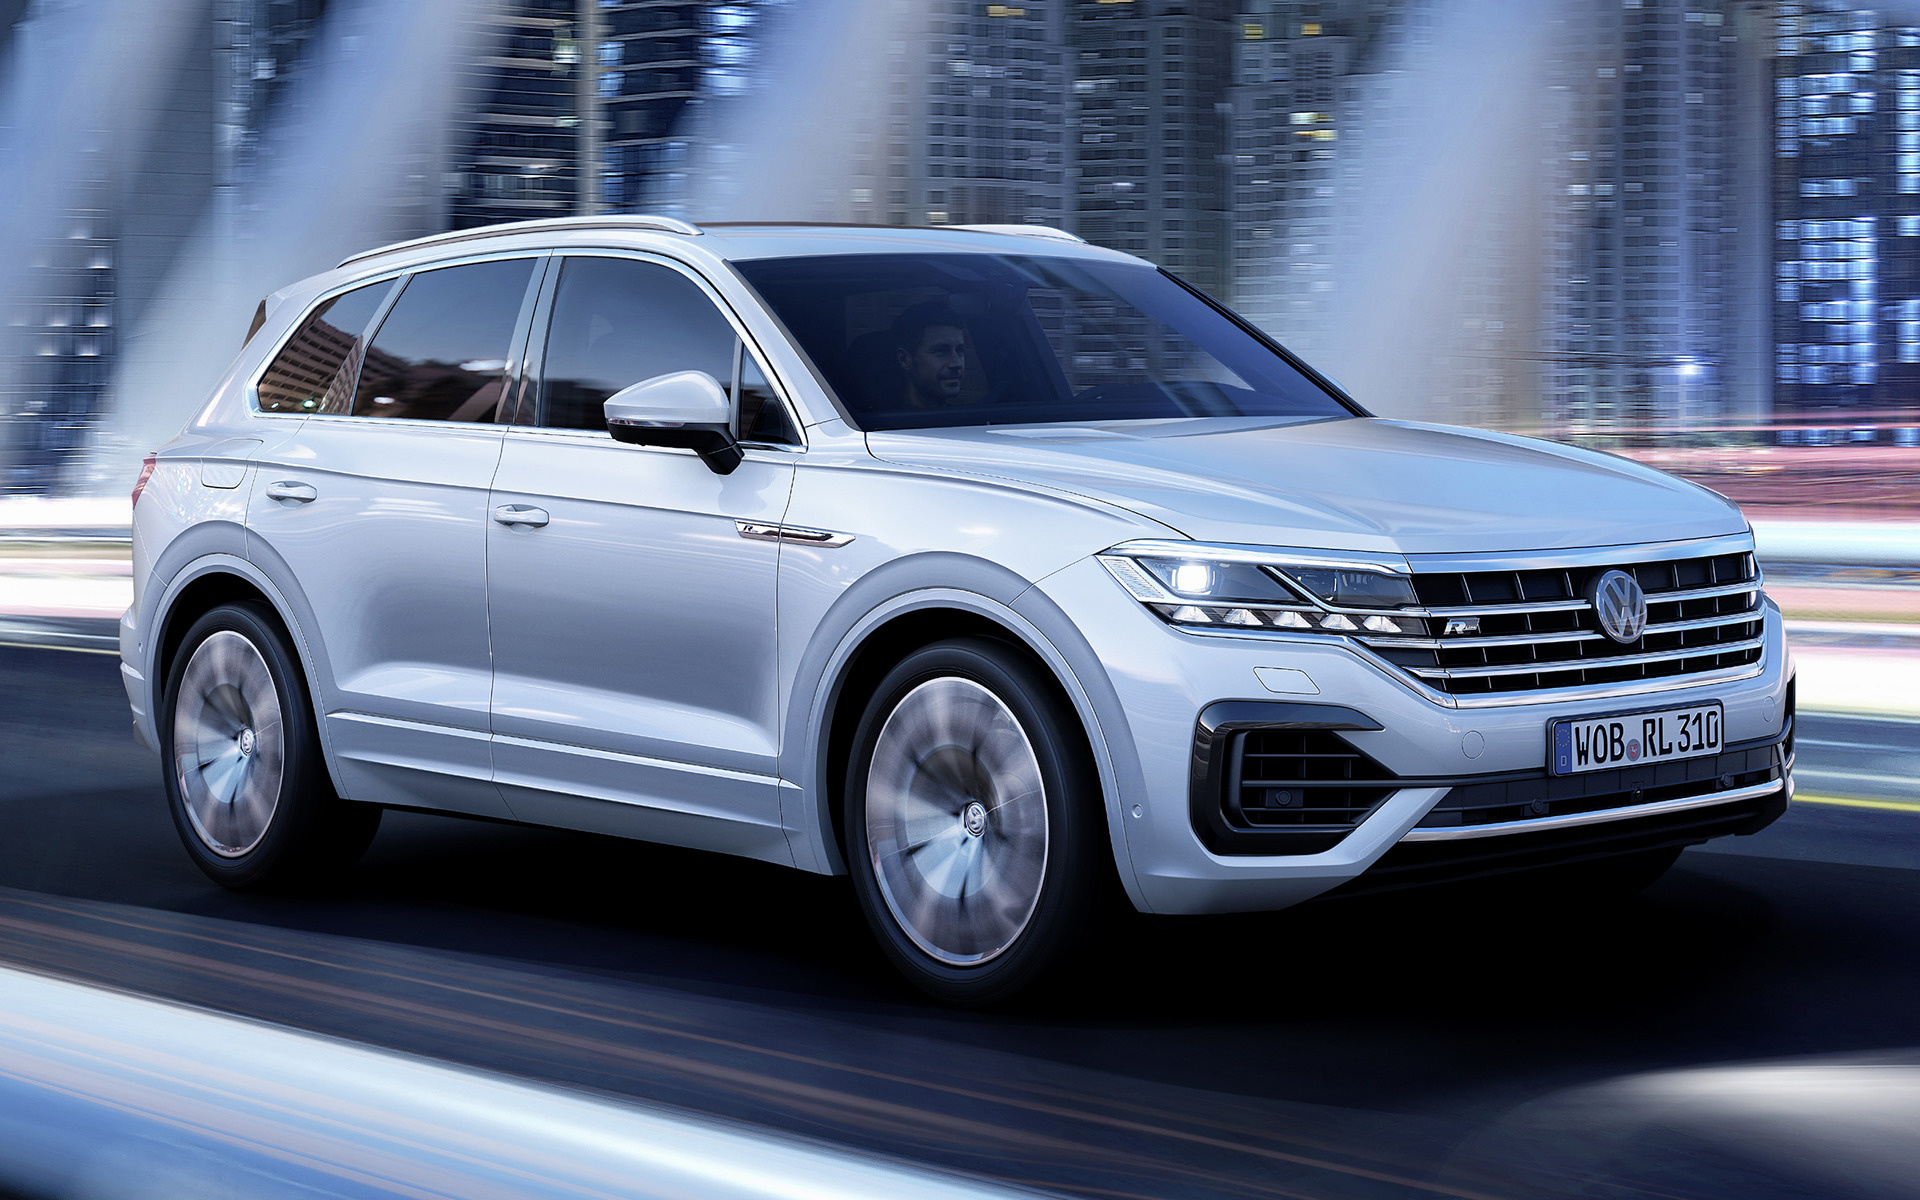 2018 Volkswagen Touareg R Line Wallpapers And Hd Images